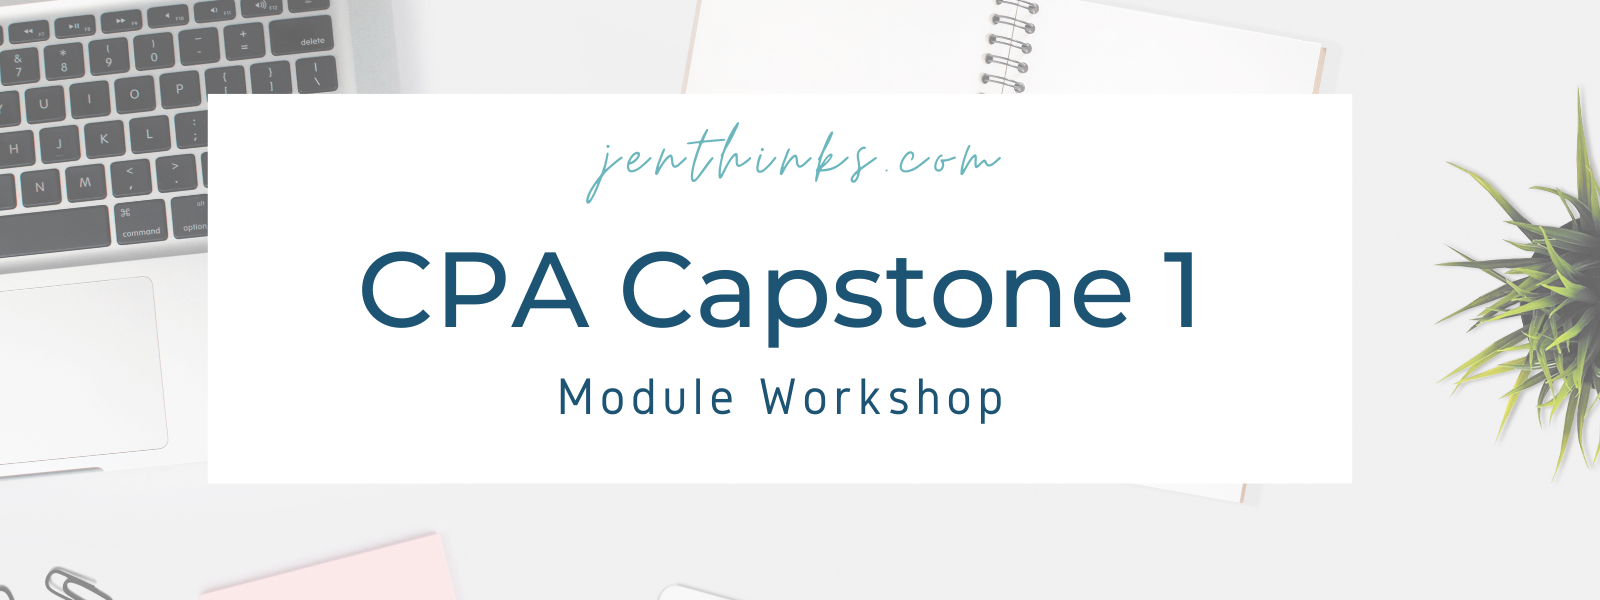 cpa capstone 1 workshop